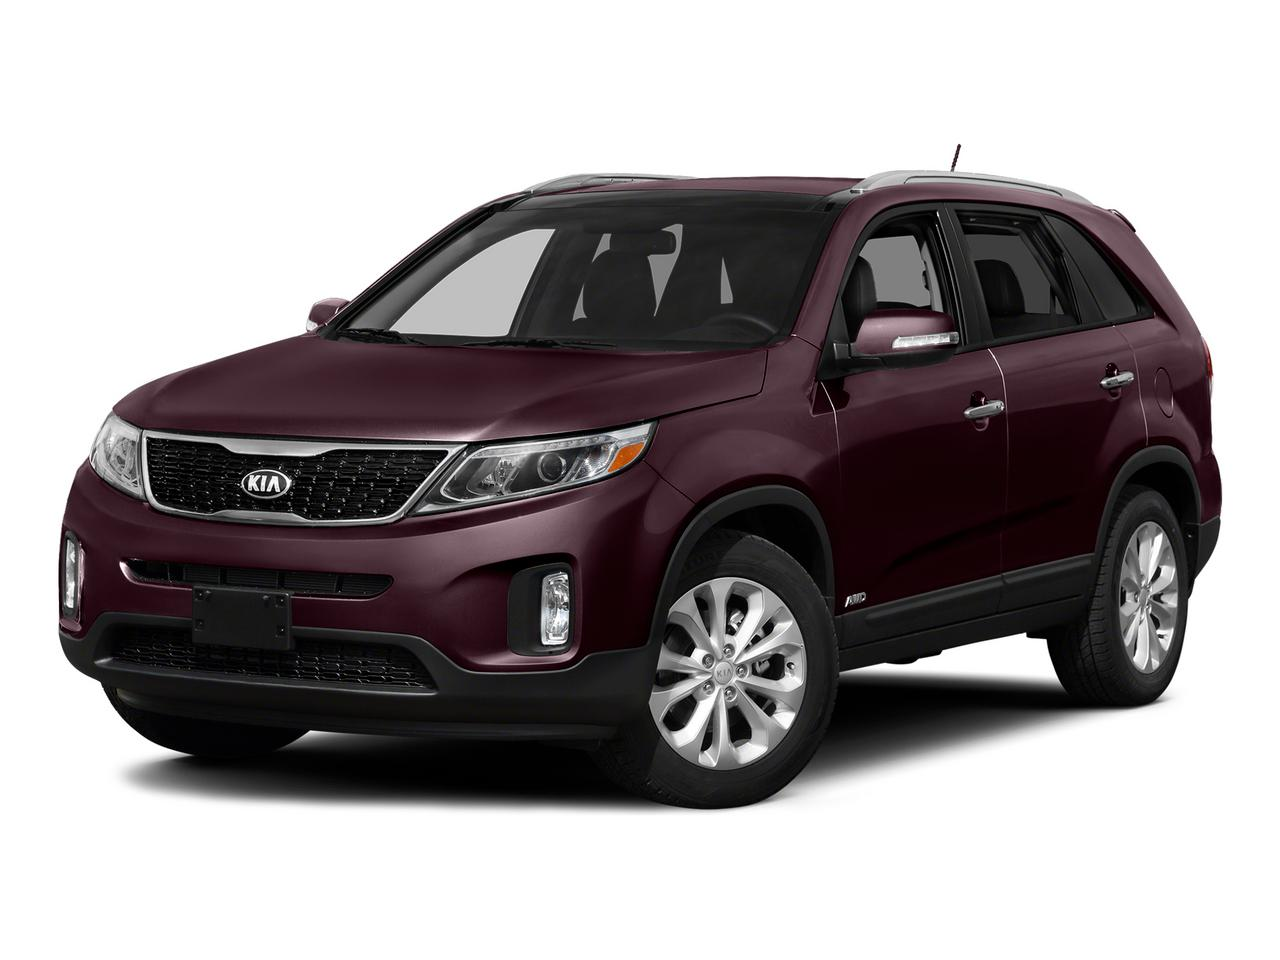 2015 Kia Sorento Vehicle Photo in Odessa, TX 79762